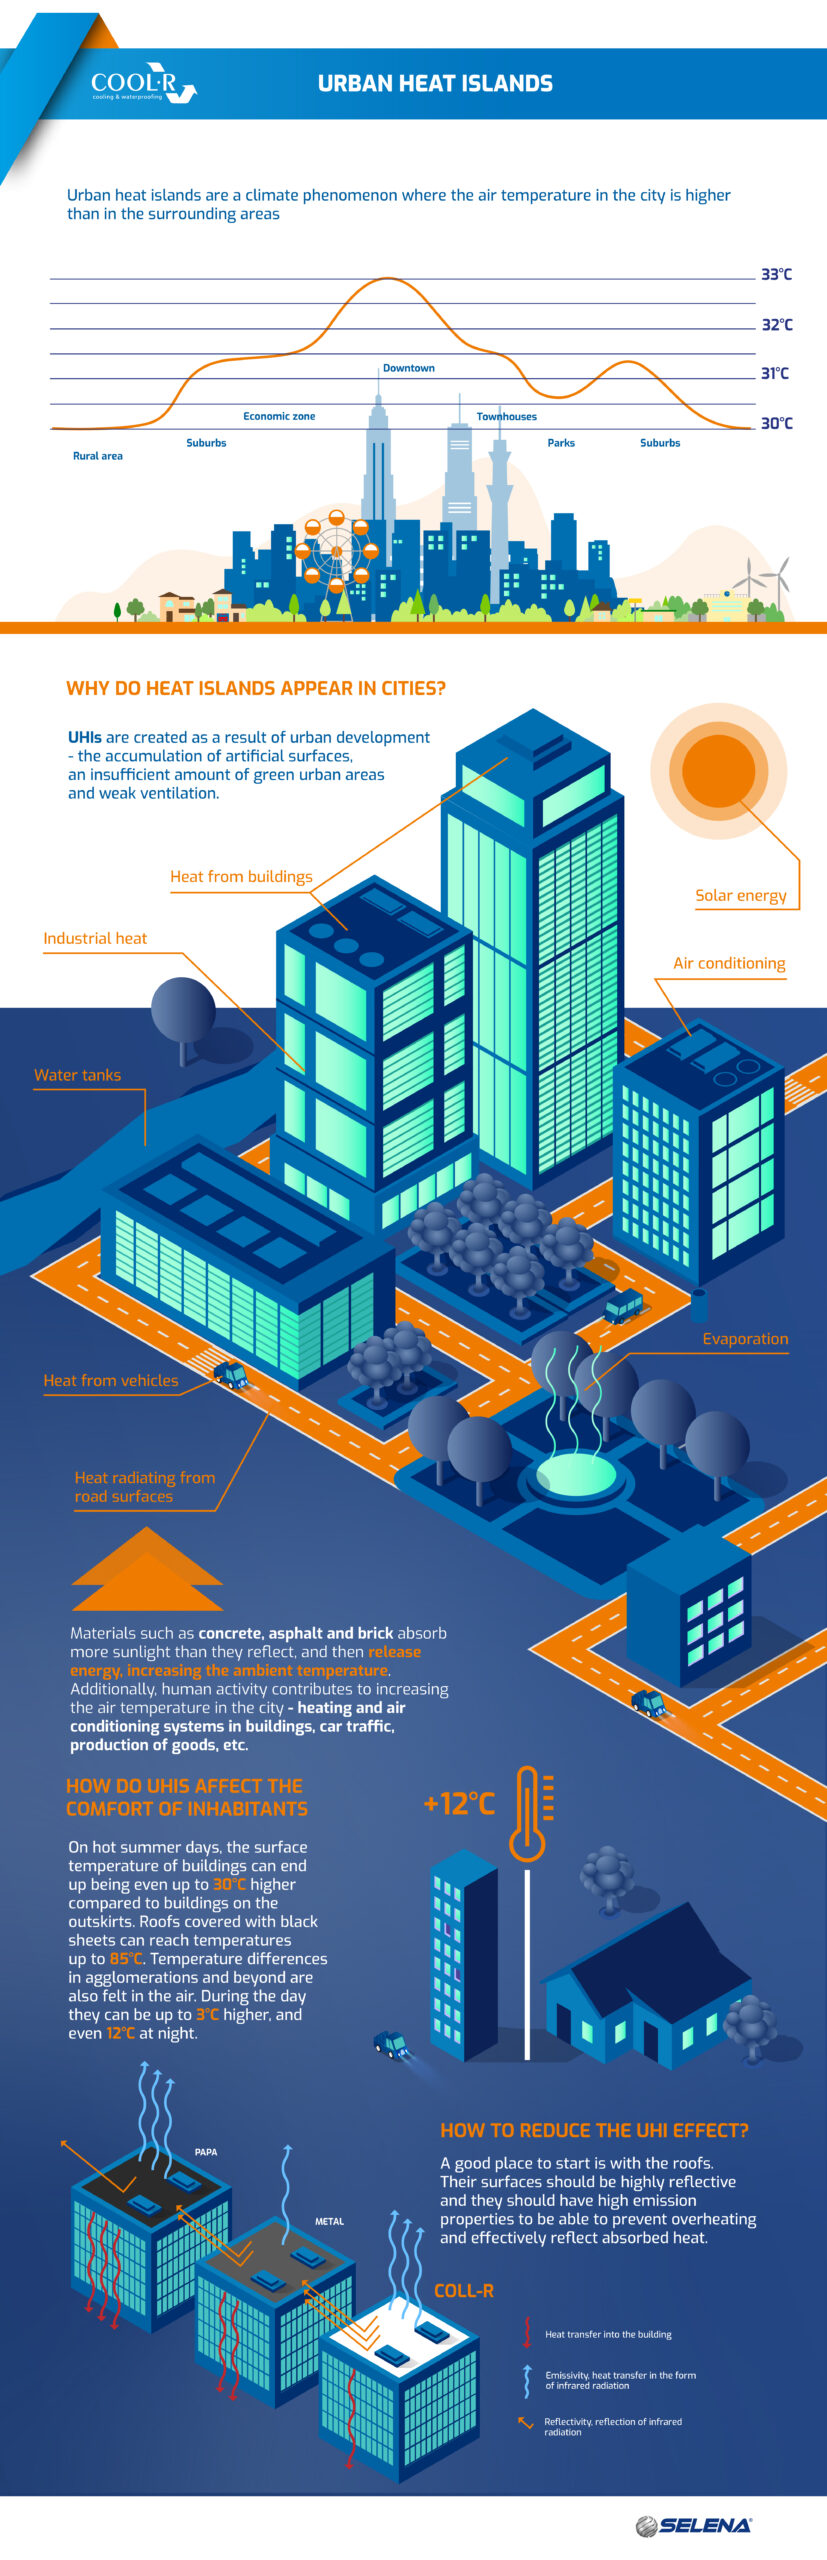 COOL R Urban heat islands article 4 infographic 26052021 scaled